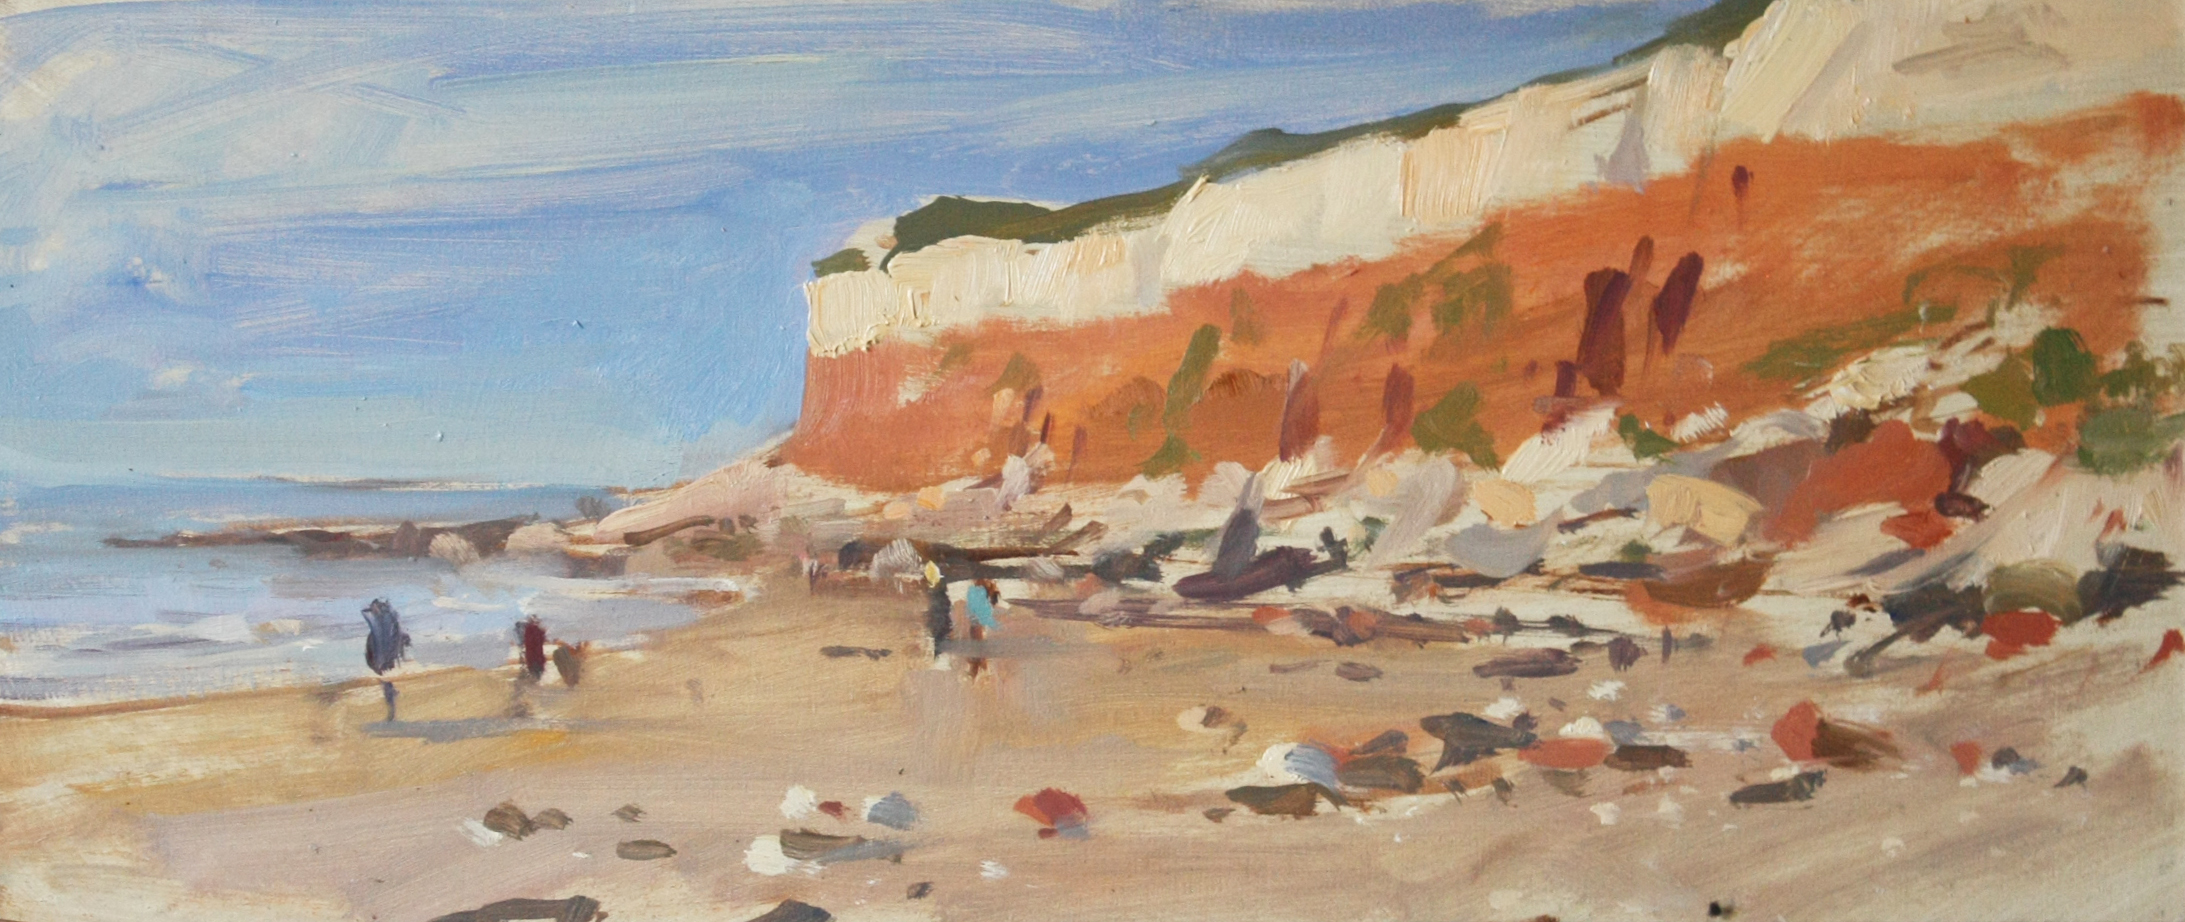 Evening light, Hunstanton cliffs